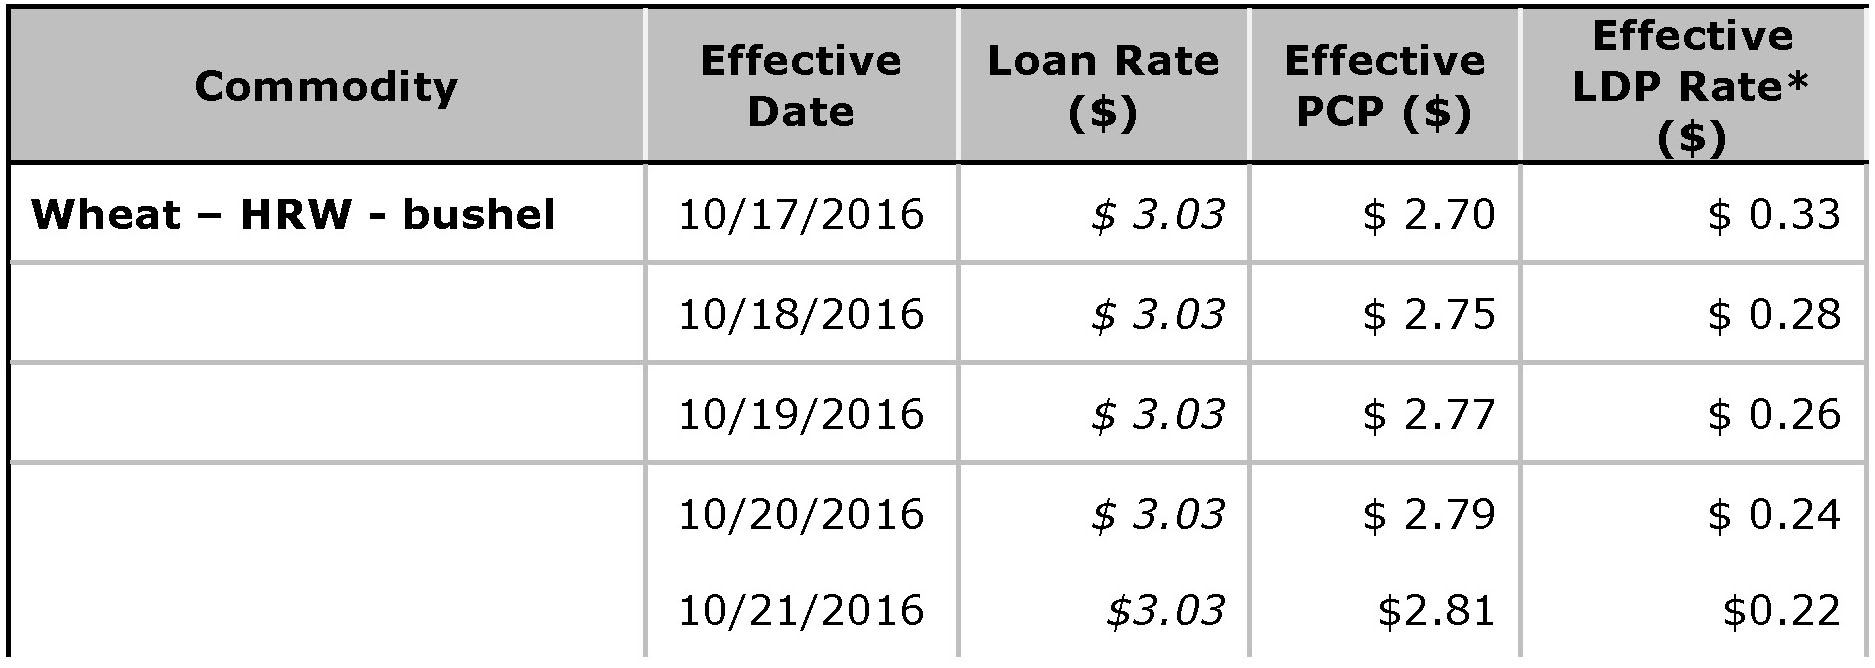 USDA Loan Deficiency Payment - October 21, 2016 - wheat